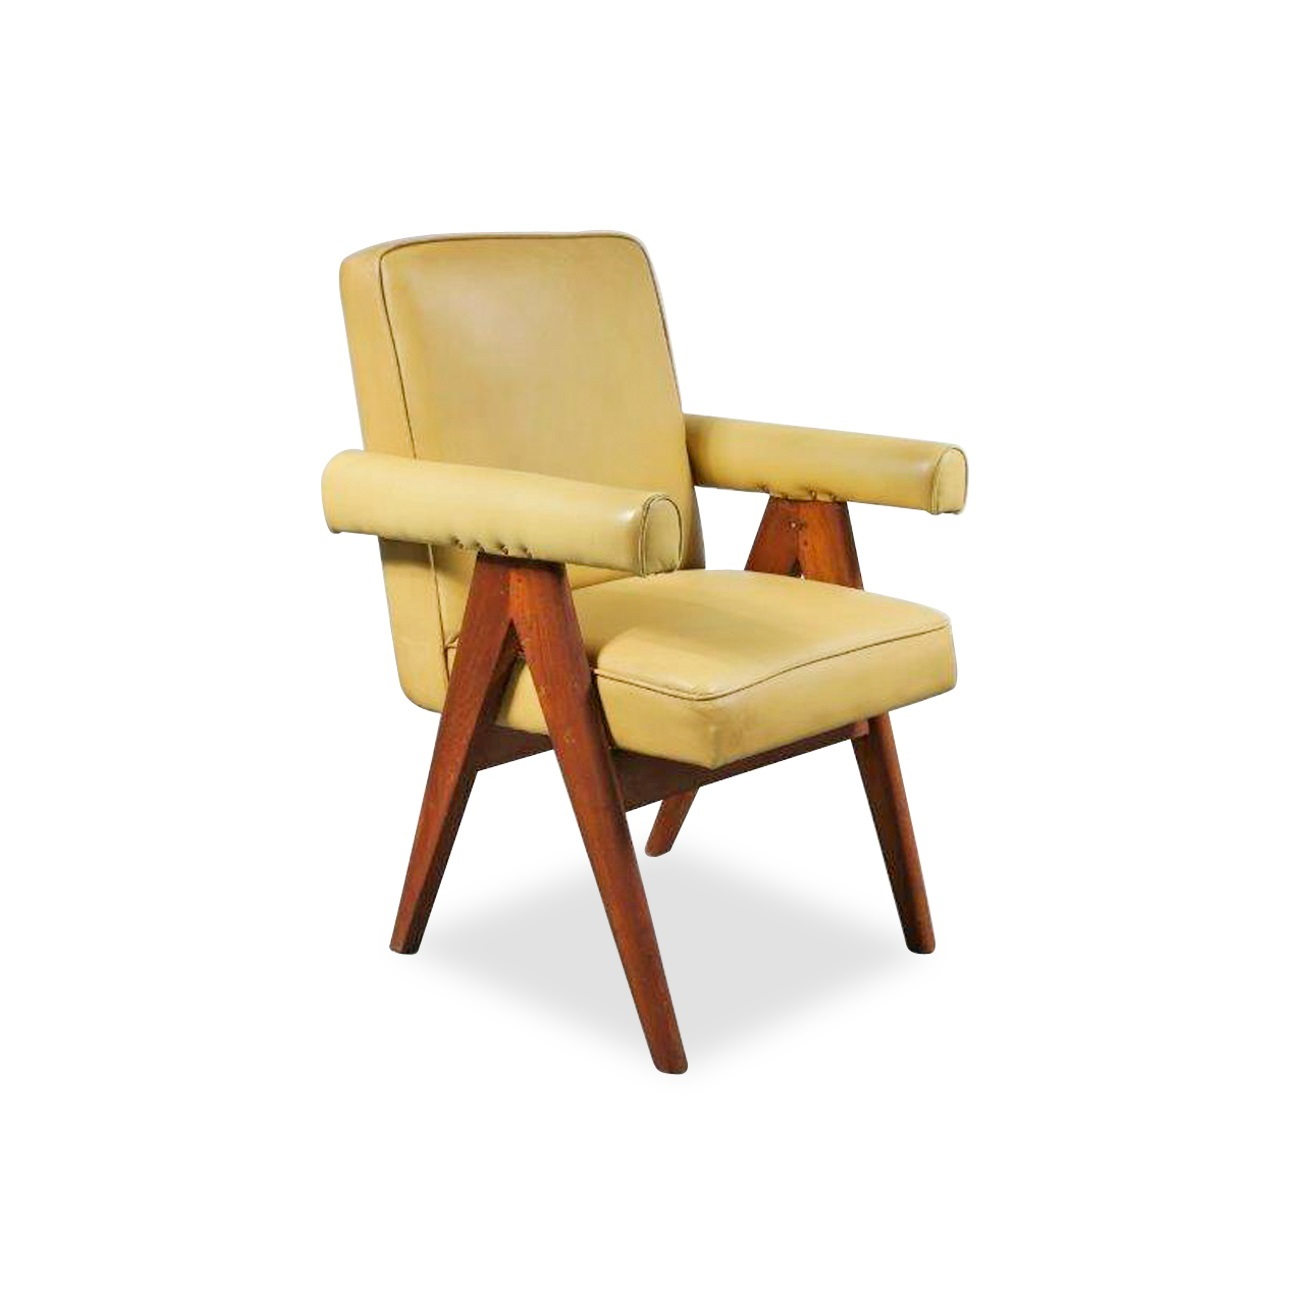 m23639 Pierre Jeanneret Senate chair 1950